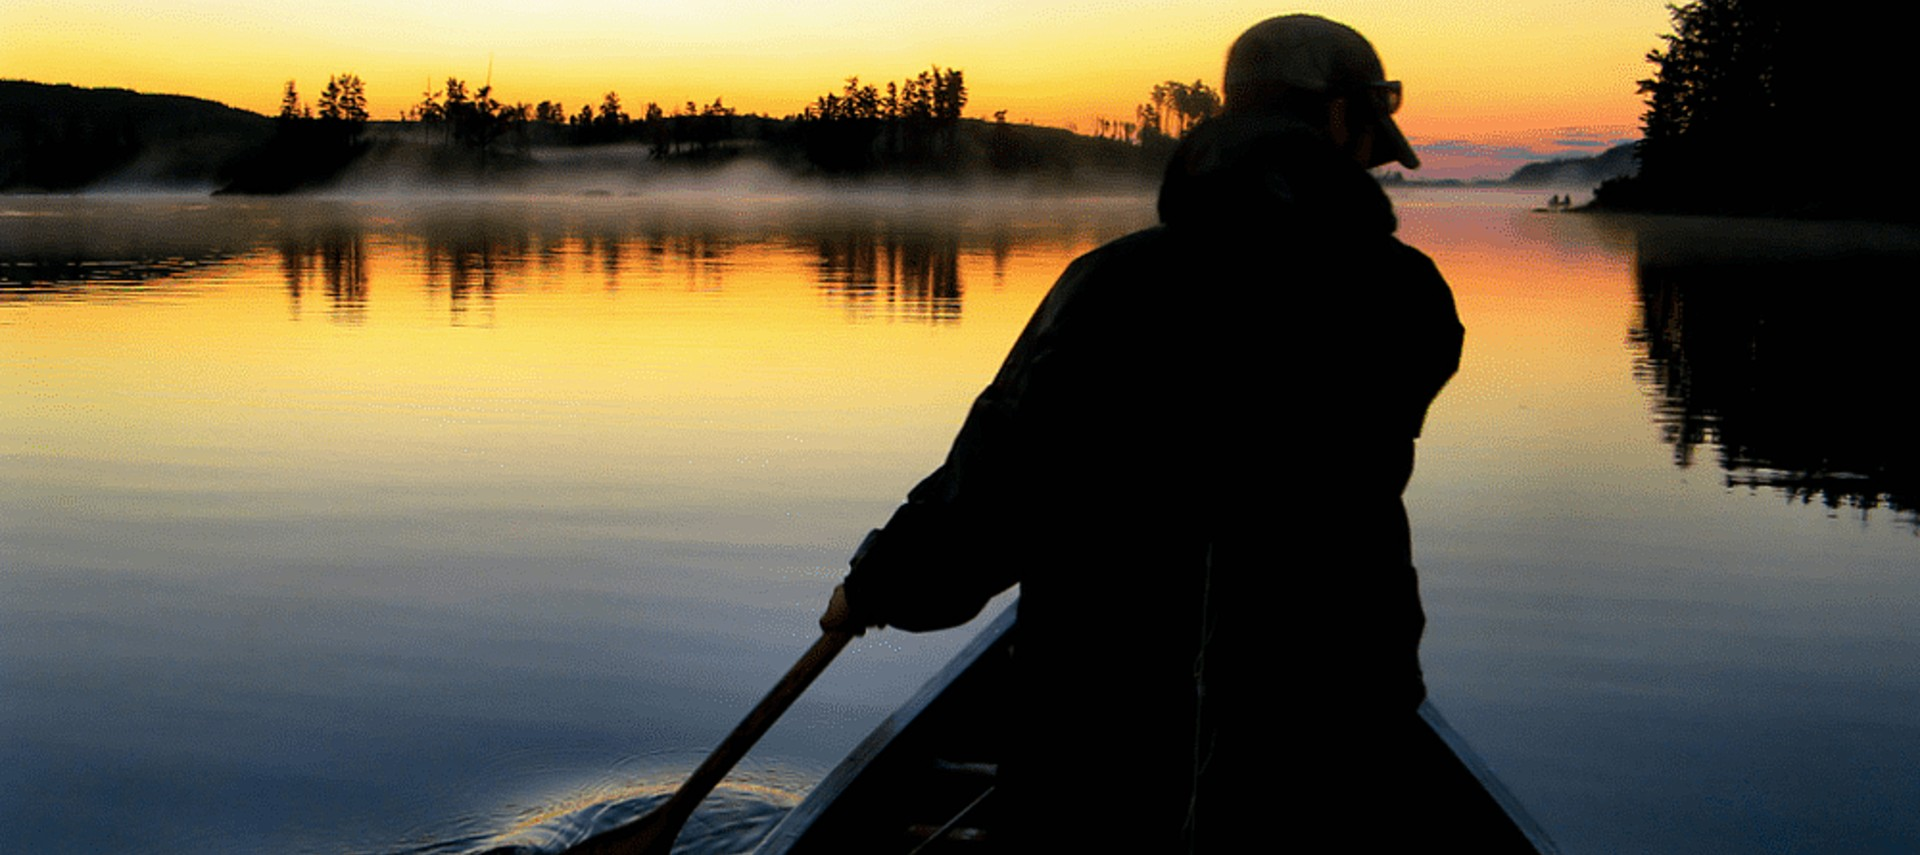 Dark silhouette of a person in a canoe rowing on a very calm lake at dusk.